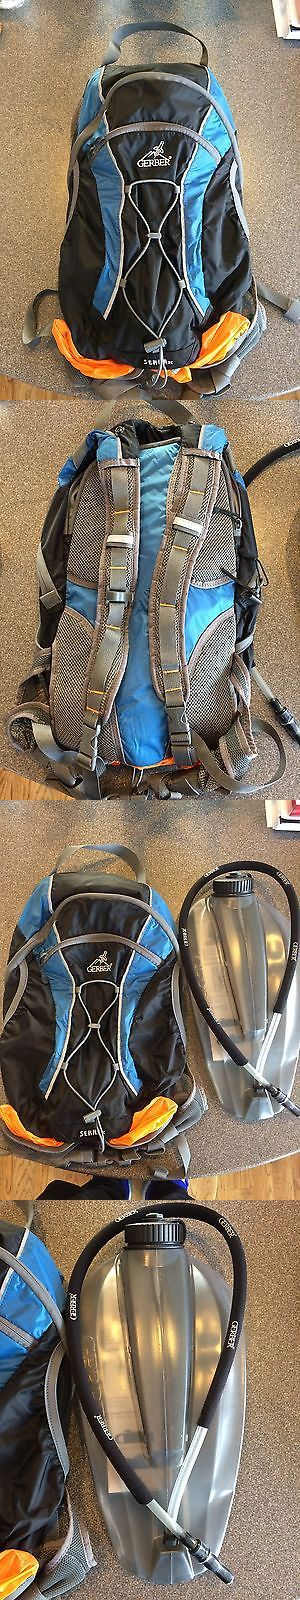 Hydration Packs 87125: New Gerber Serra Xc Hydration Hiking Pack 11055 Backpack W/ 100 Ounce Reservoir -> BUY IT NOW ONLY: $32.0 on eBay!